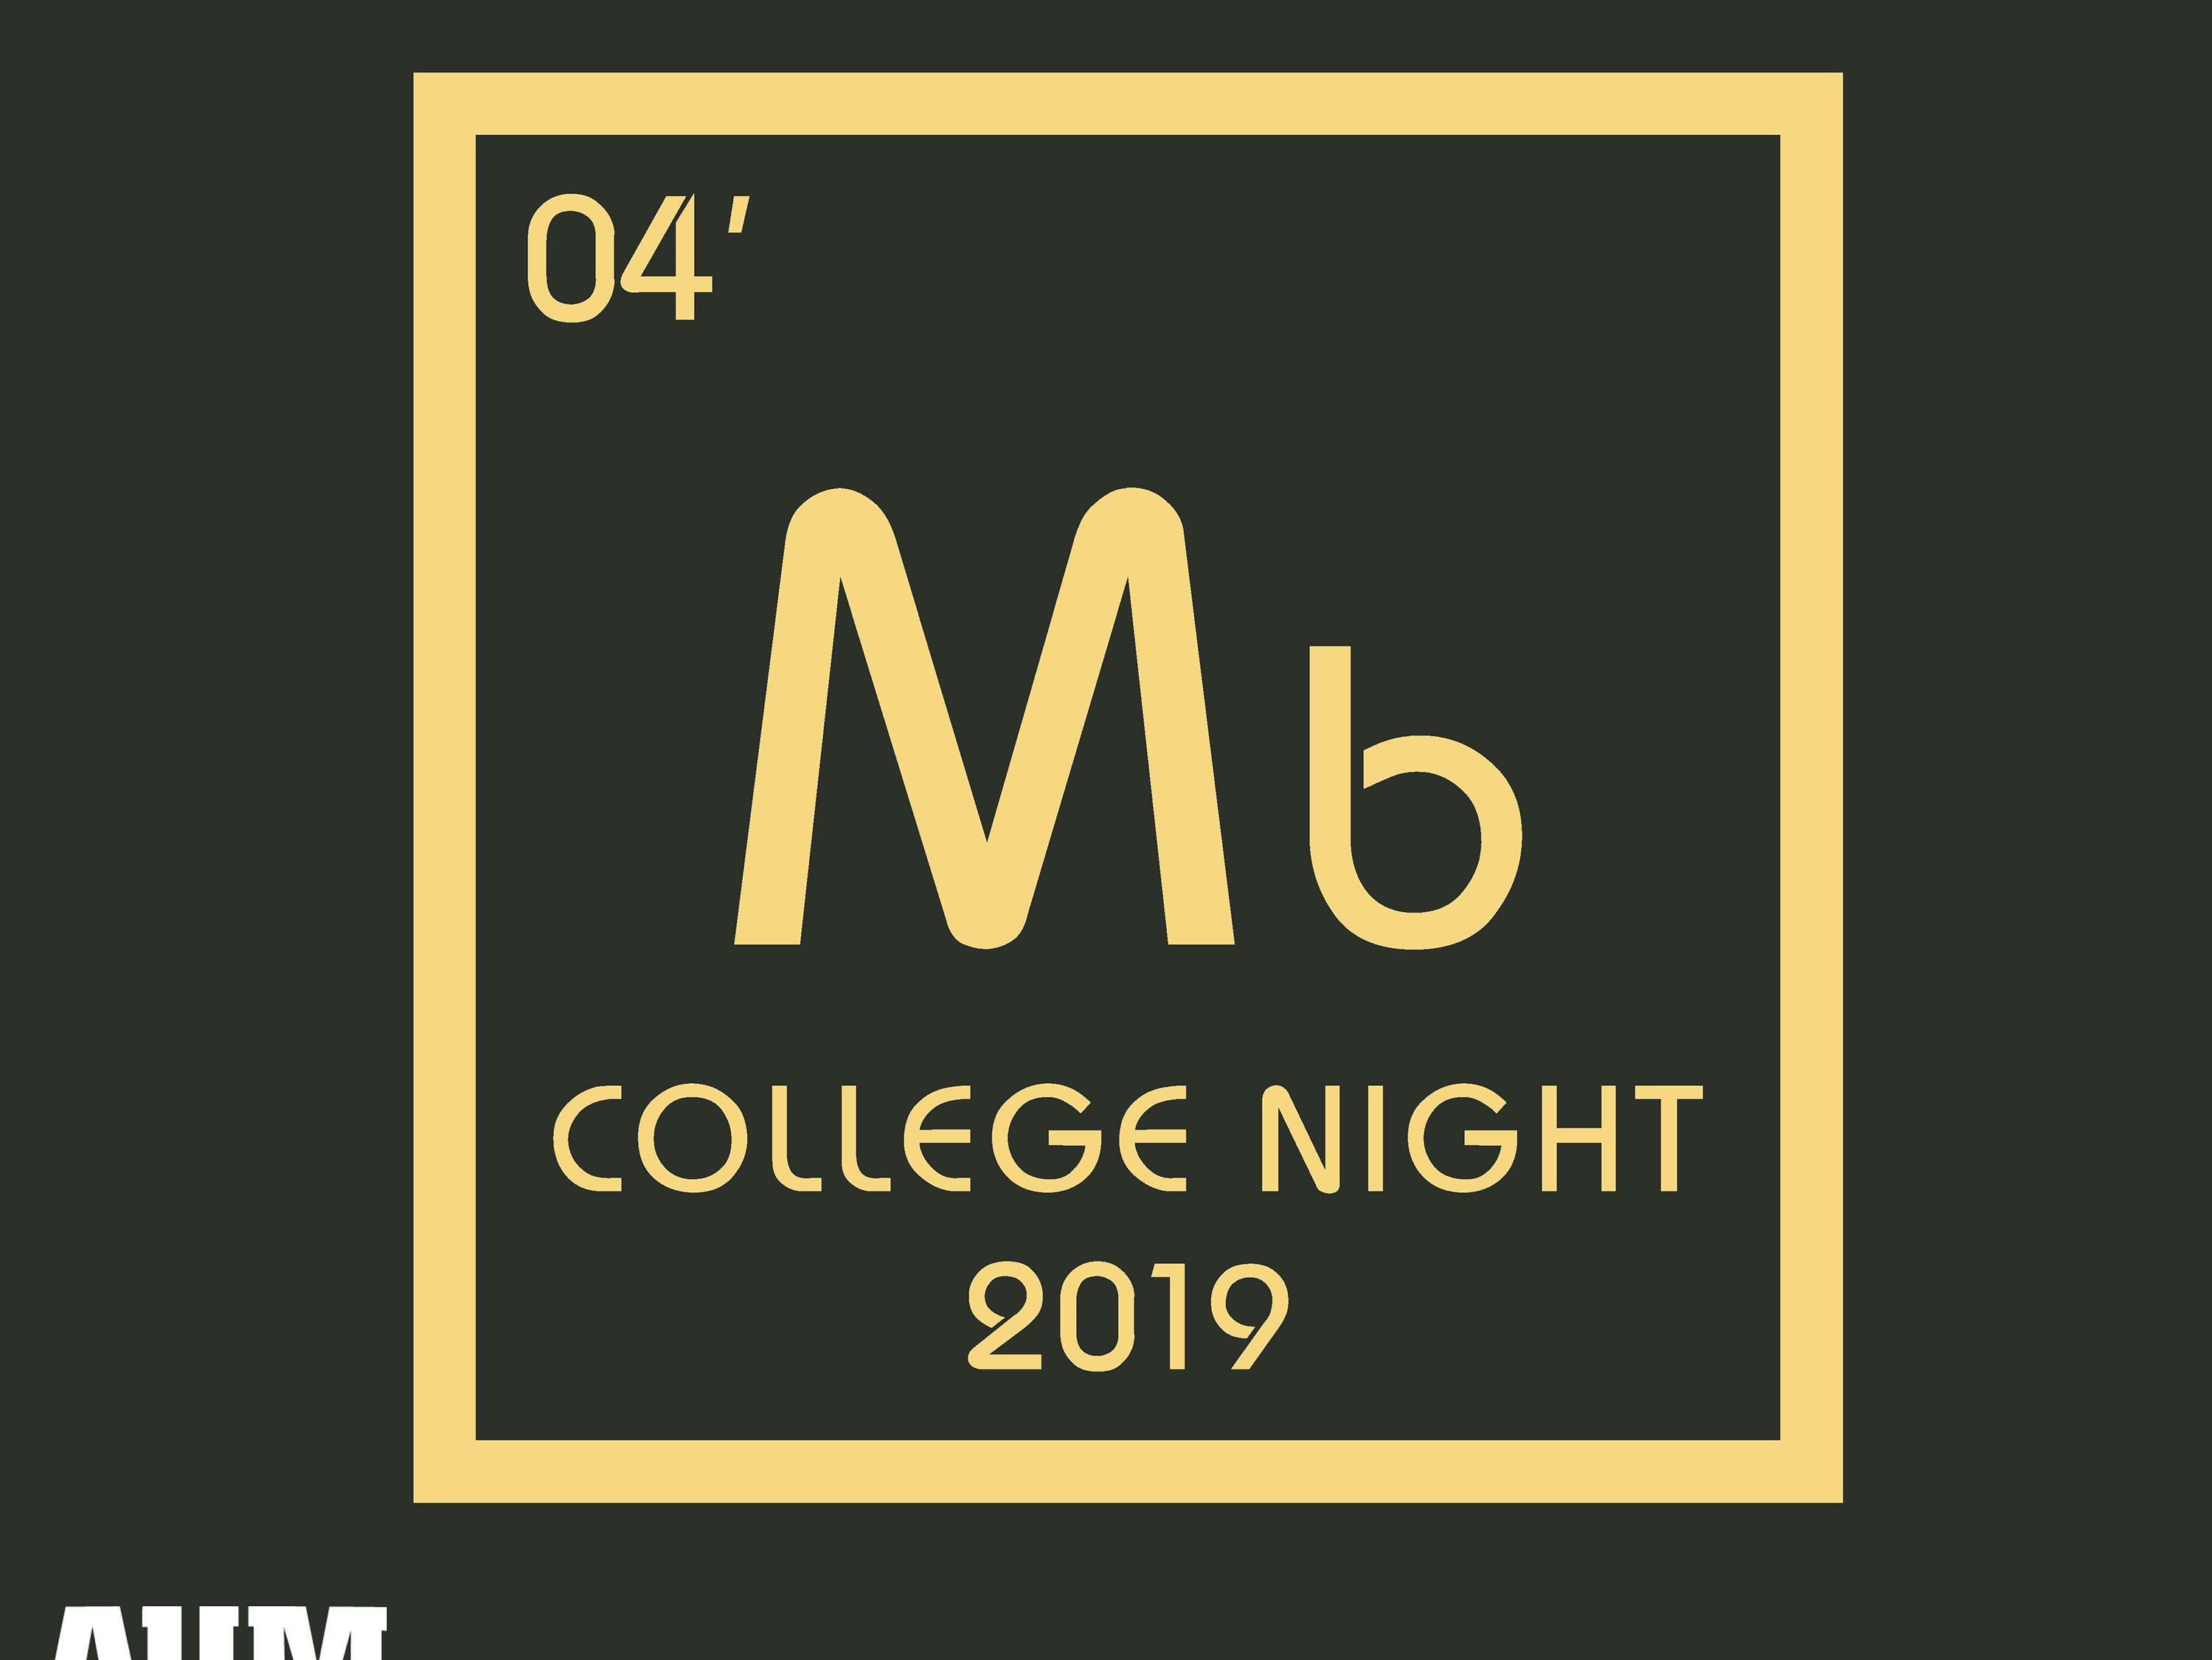 Montgomery Biscuits free t-shirt giveaway design for College Night on Thursday, Aug. 29, 2019.